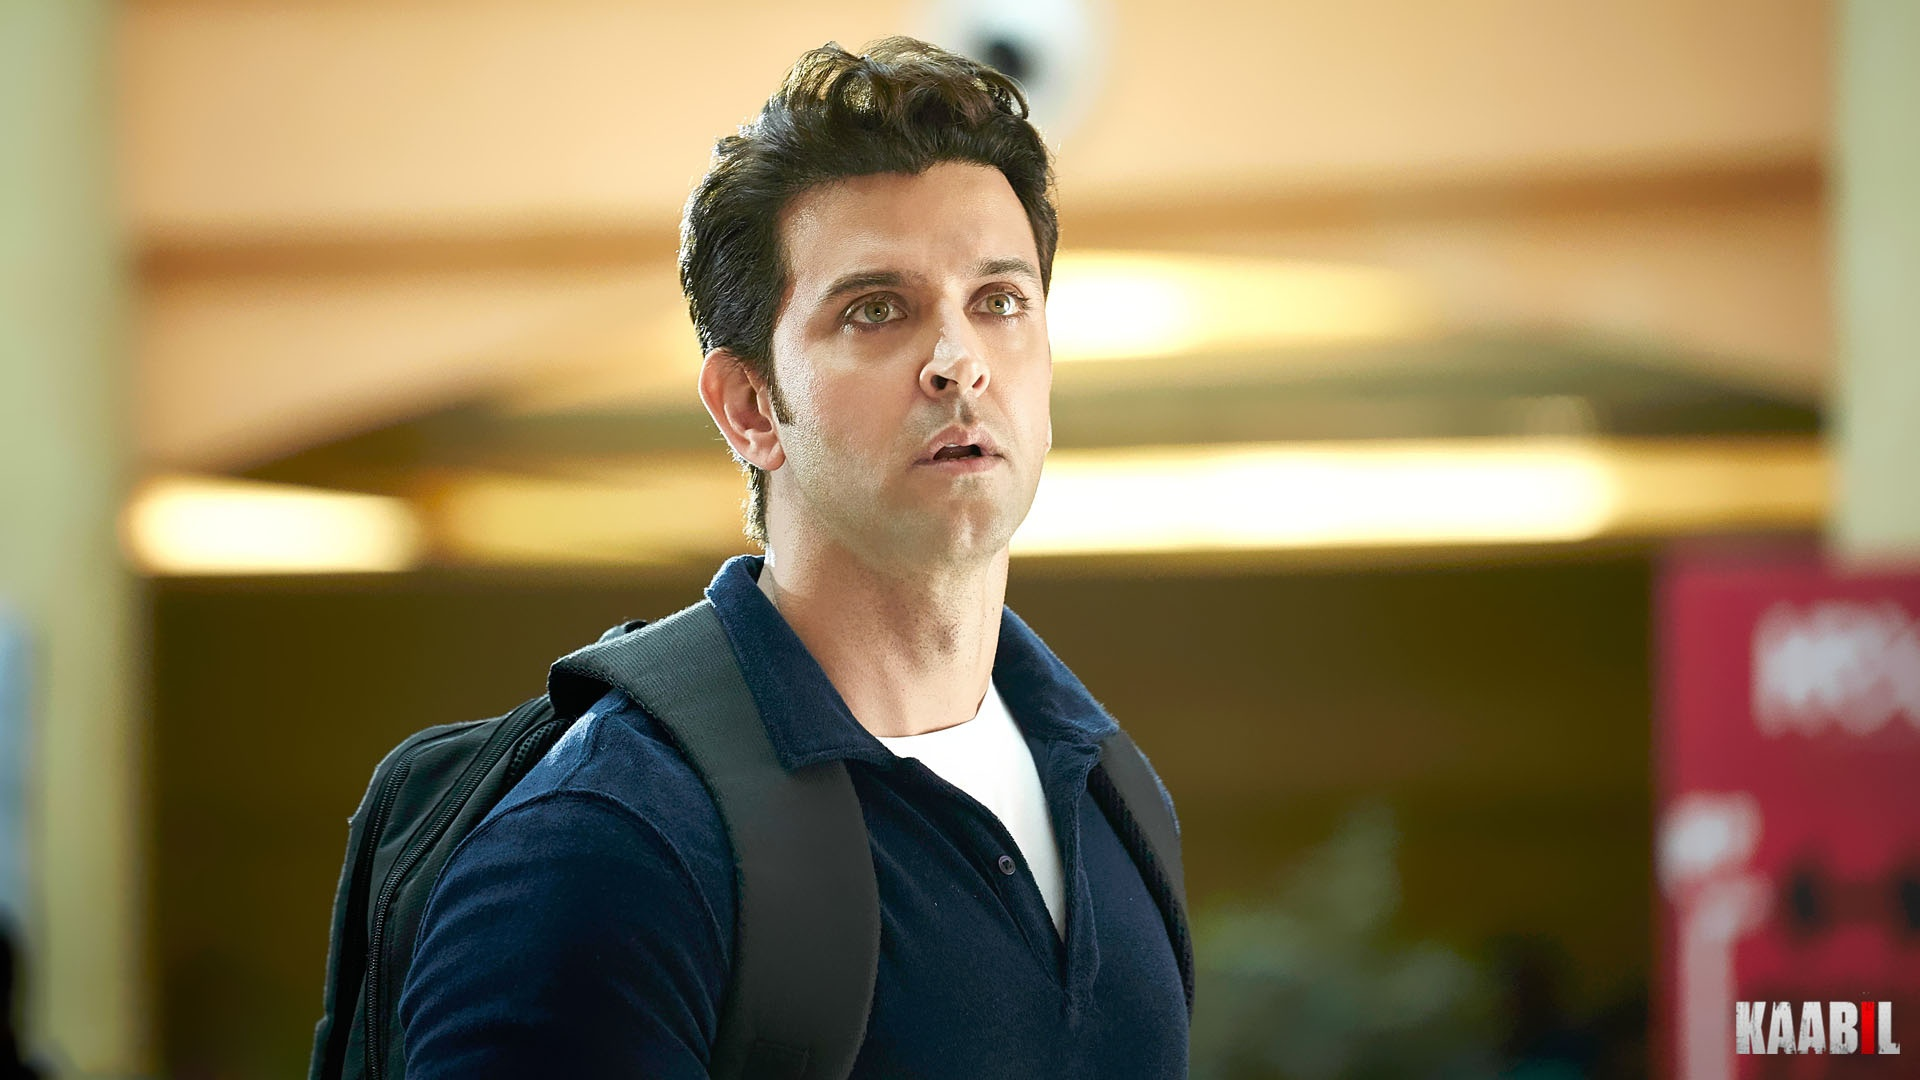 Hrithik 4k Wallpapers For Your Desktop Or Mobile Screen Free